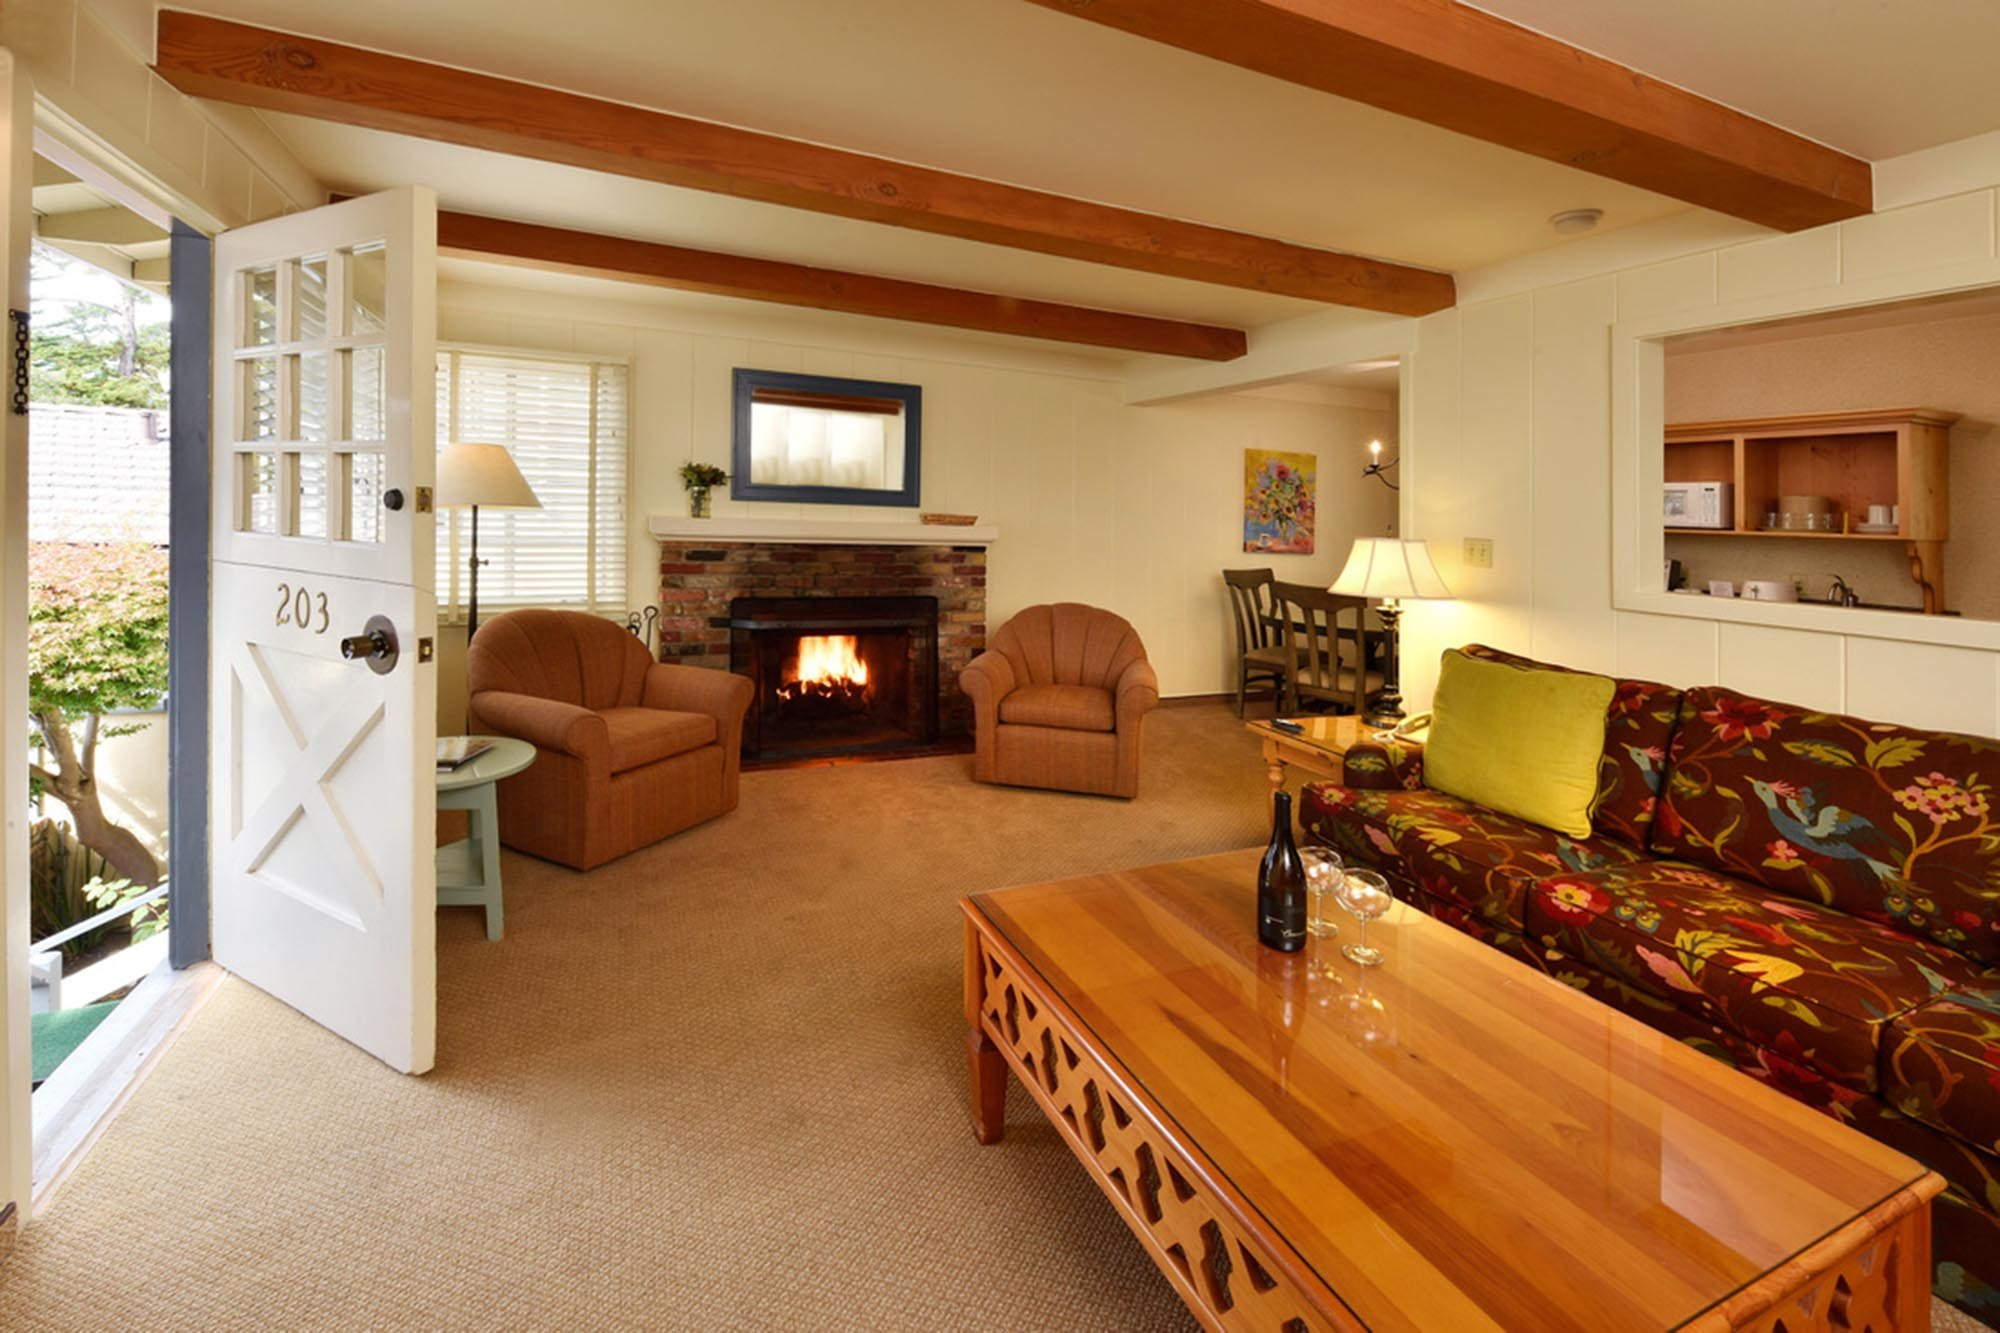 Horizon Inn Ocean View Lodge Affordable Luxury in Carmel By The Sea